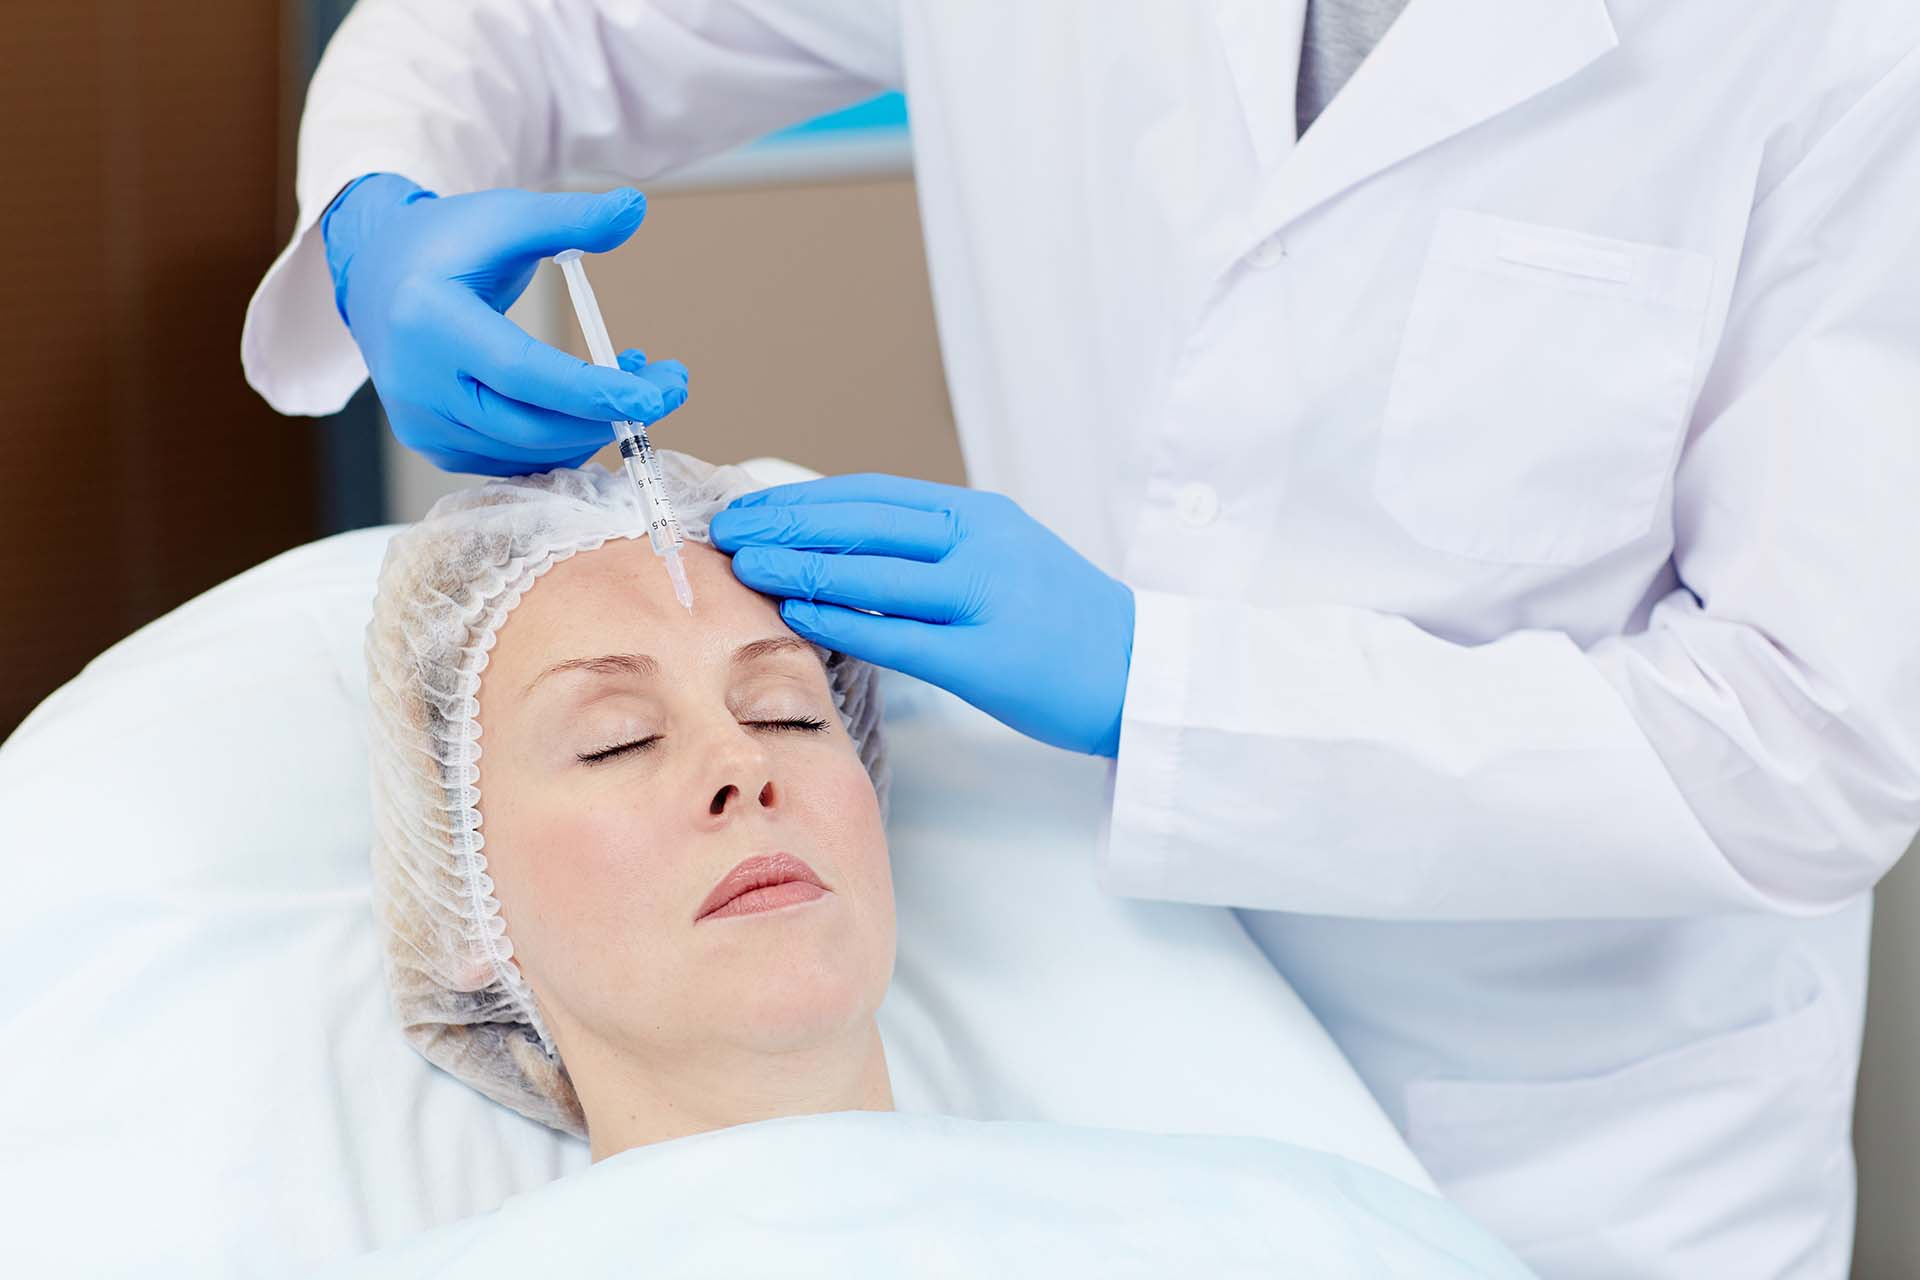 5 keys for long-lasting effects of your Botox procedure